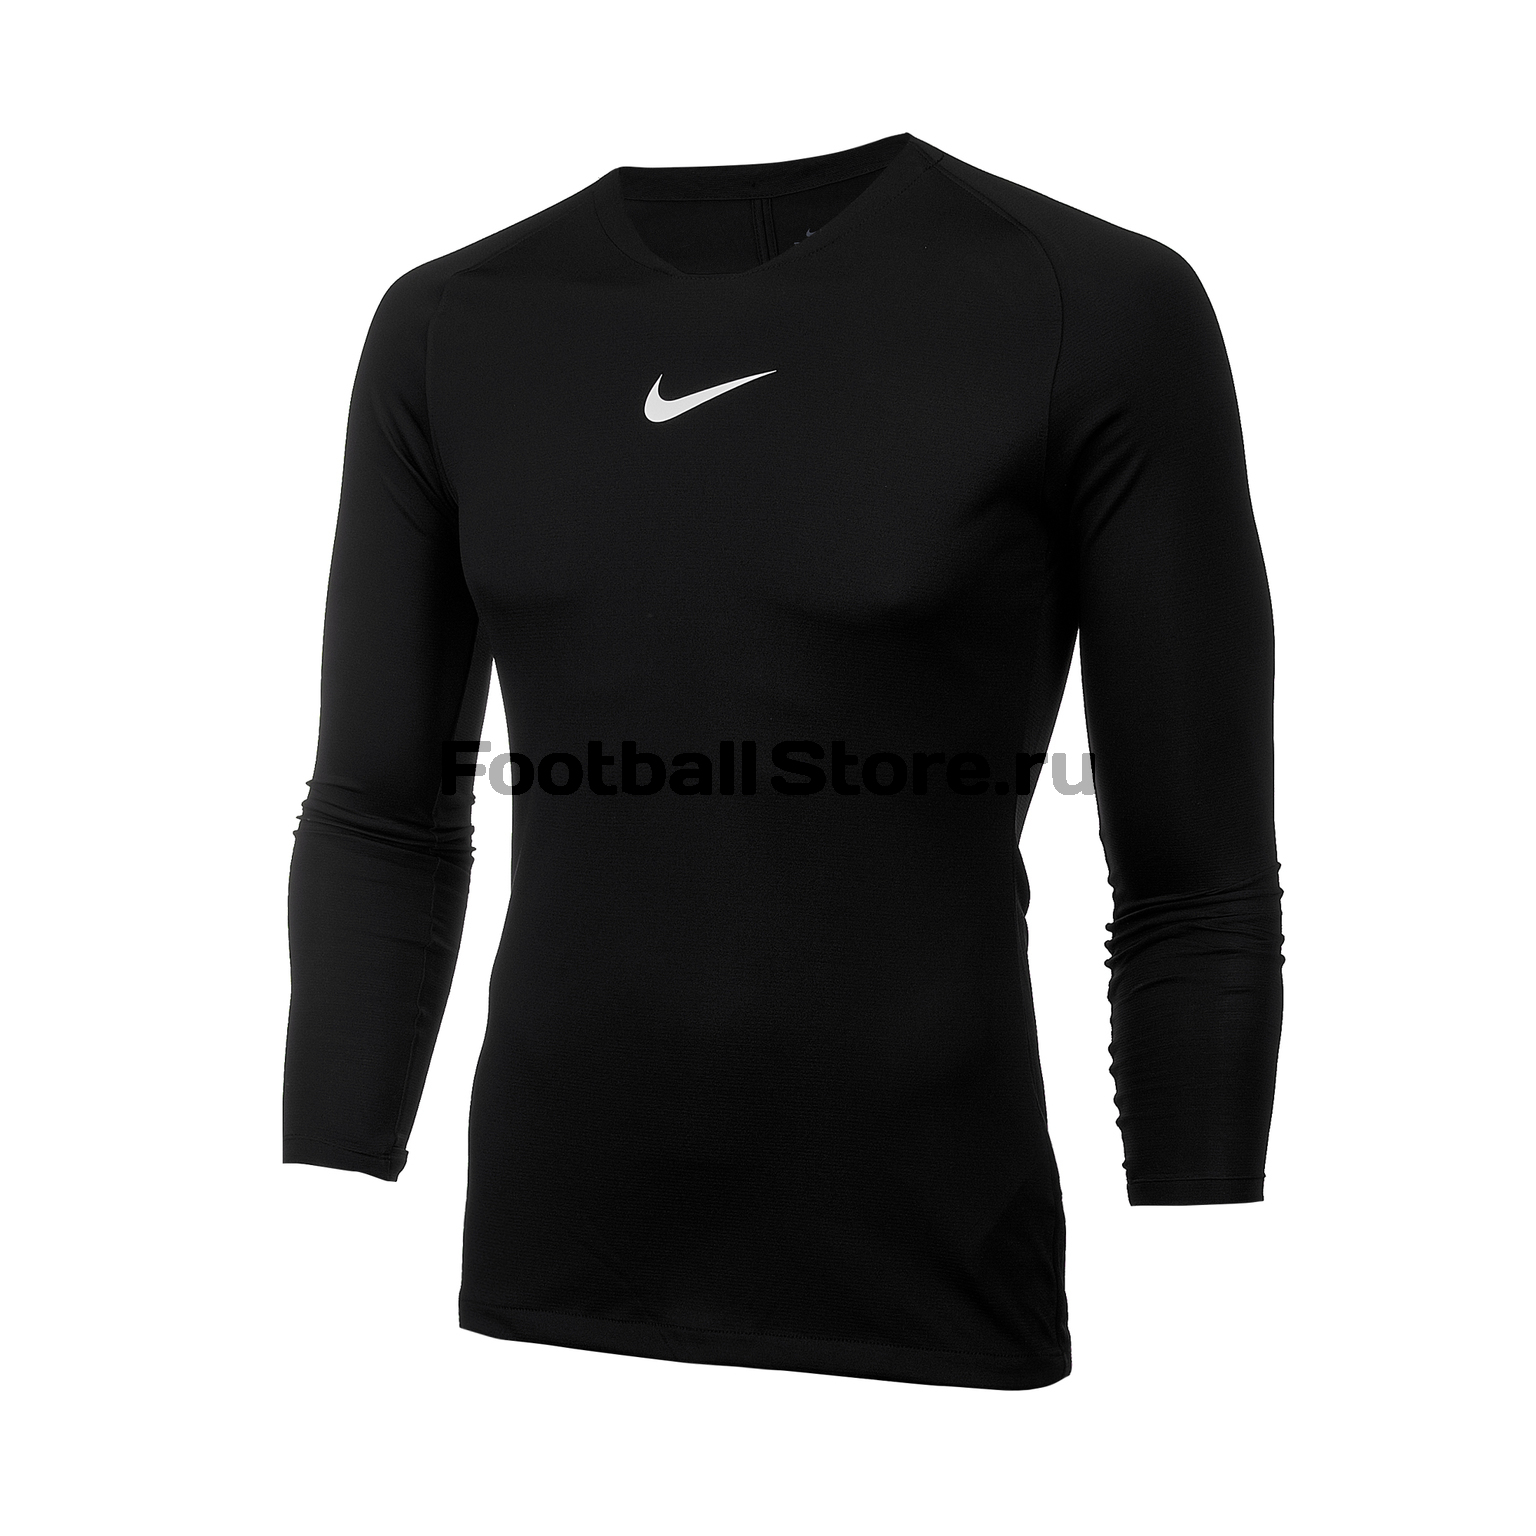 Белье футболка Nike Dry Park First Layer AV2609-010